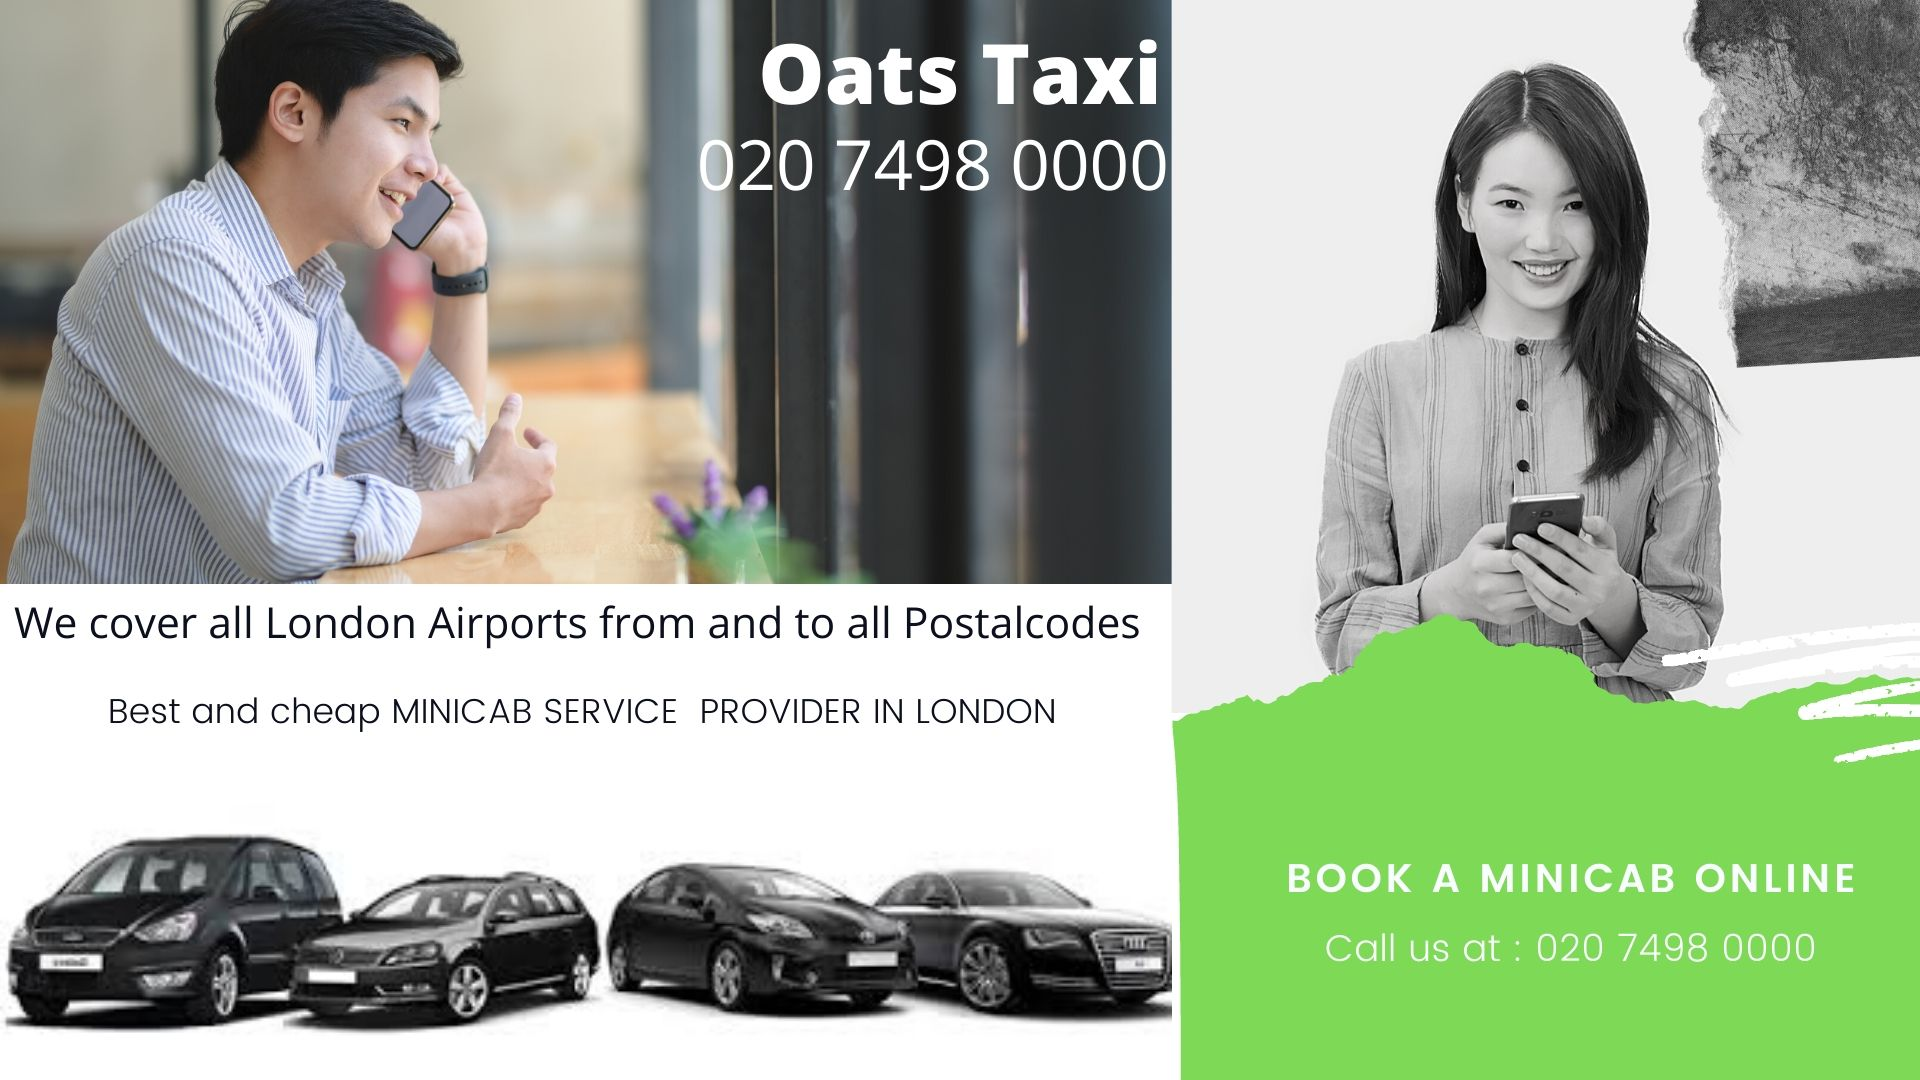 Minicab Near ELSLEY ROAD, Battersea SW11, Minicab From Battersea SW11 To Gatwick Airport